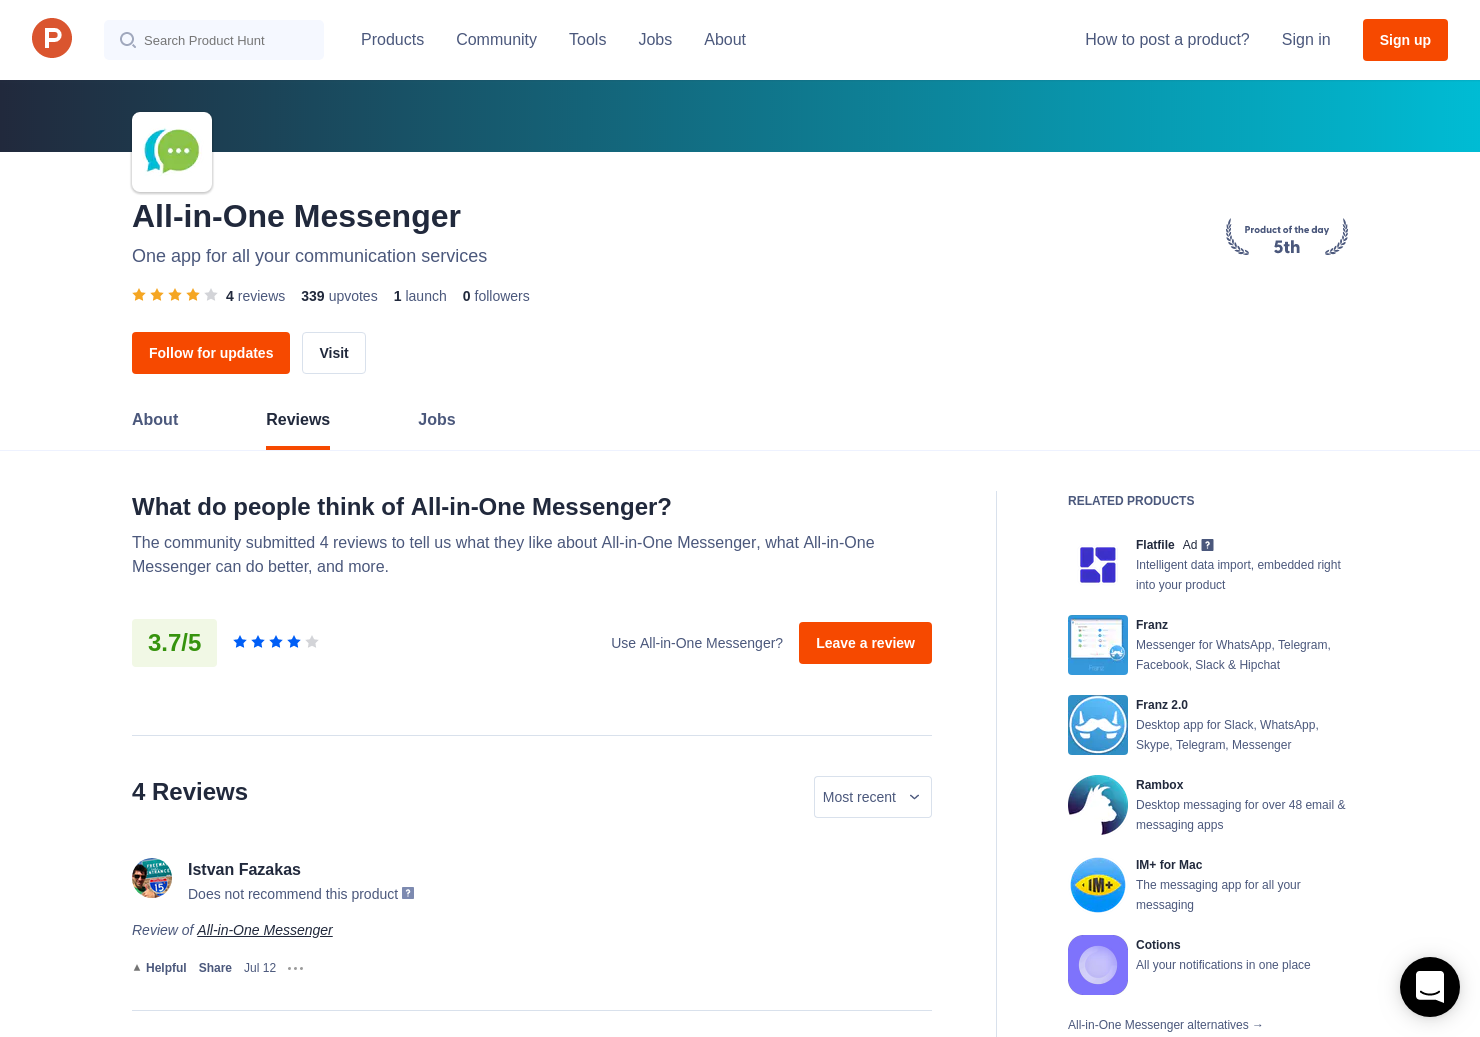 3 All-in-One Messenger Reviews - Pros, Cons and Rating